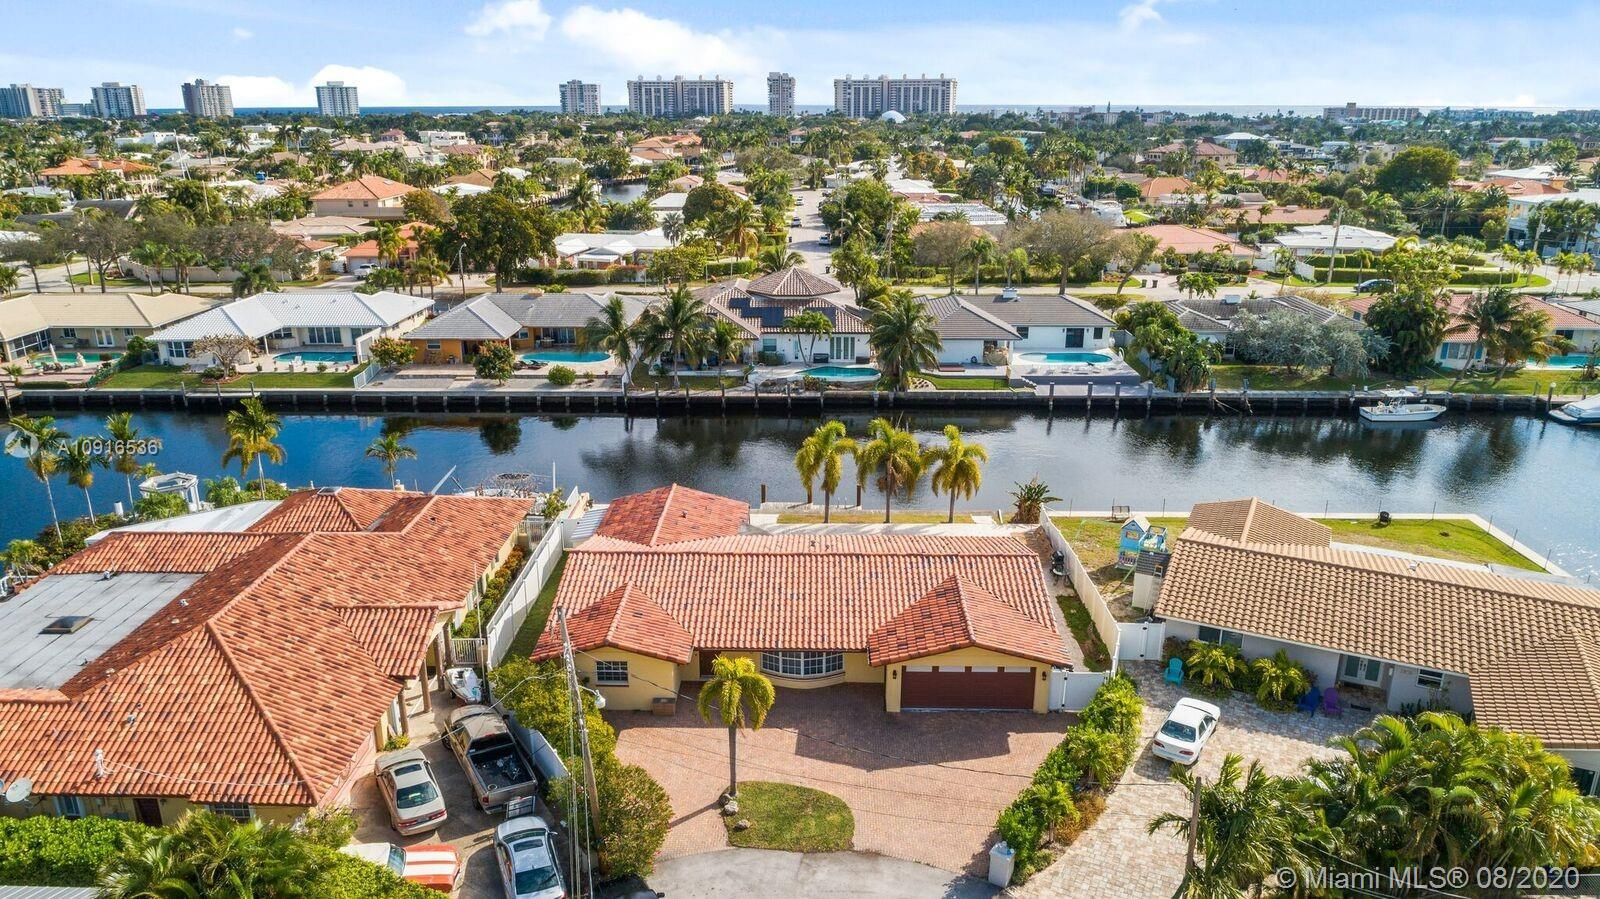 THIS STUNNING OCEAN ACCESS WATERFRONT POOL HOME WITH DOCK IN THE HIGHLY DESIRED AREA OF FORT LAUDERD